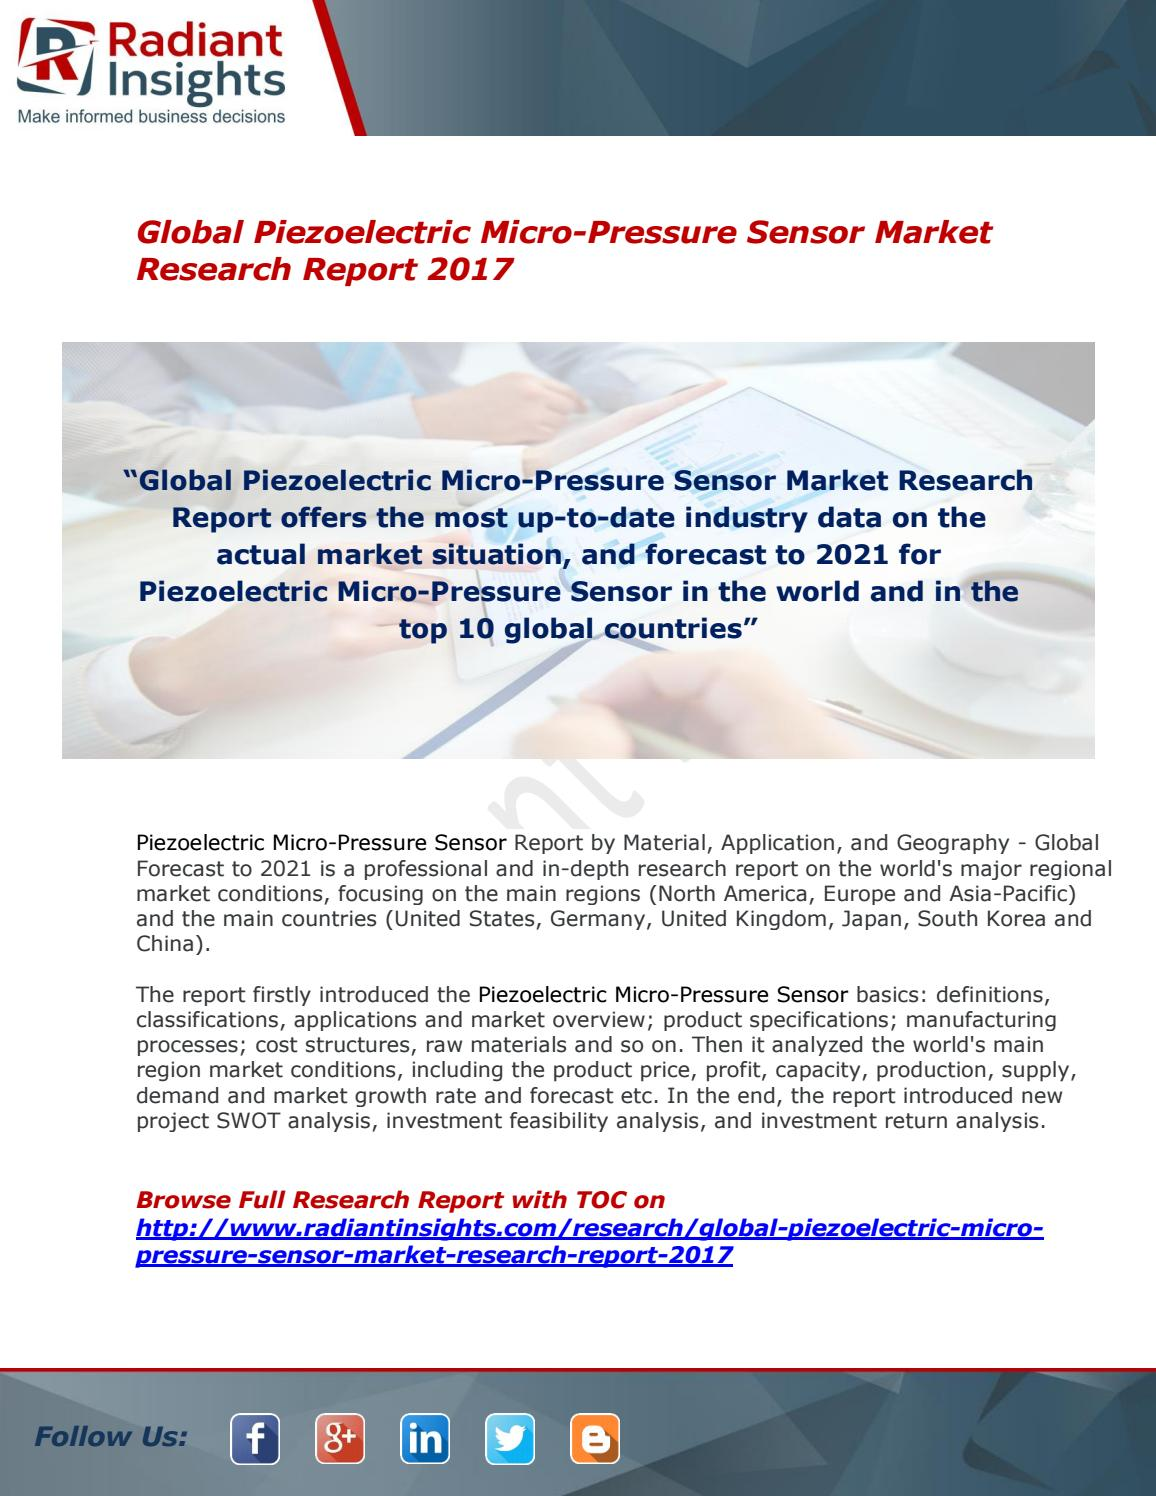 Piezoelectric Micro-Pressure Sensor Market Growth and